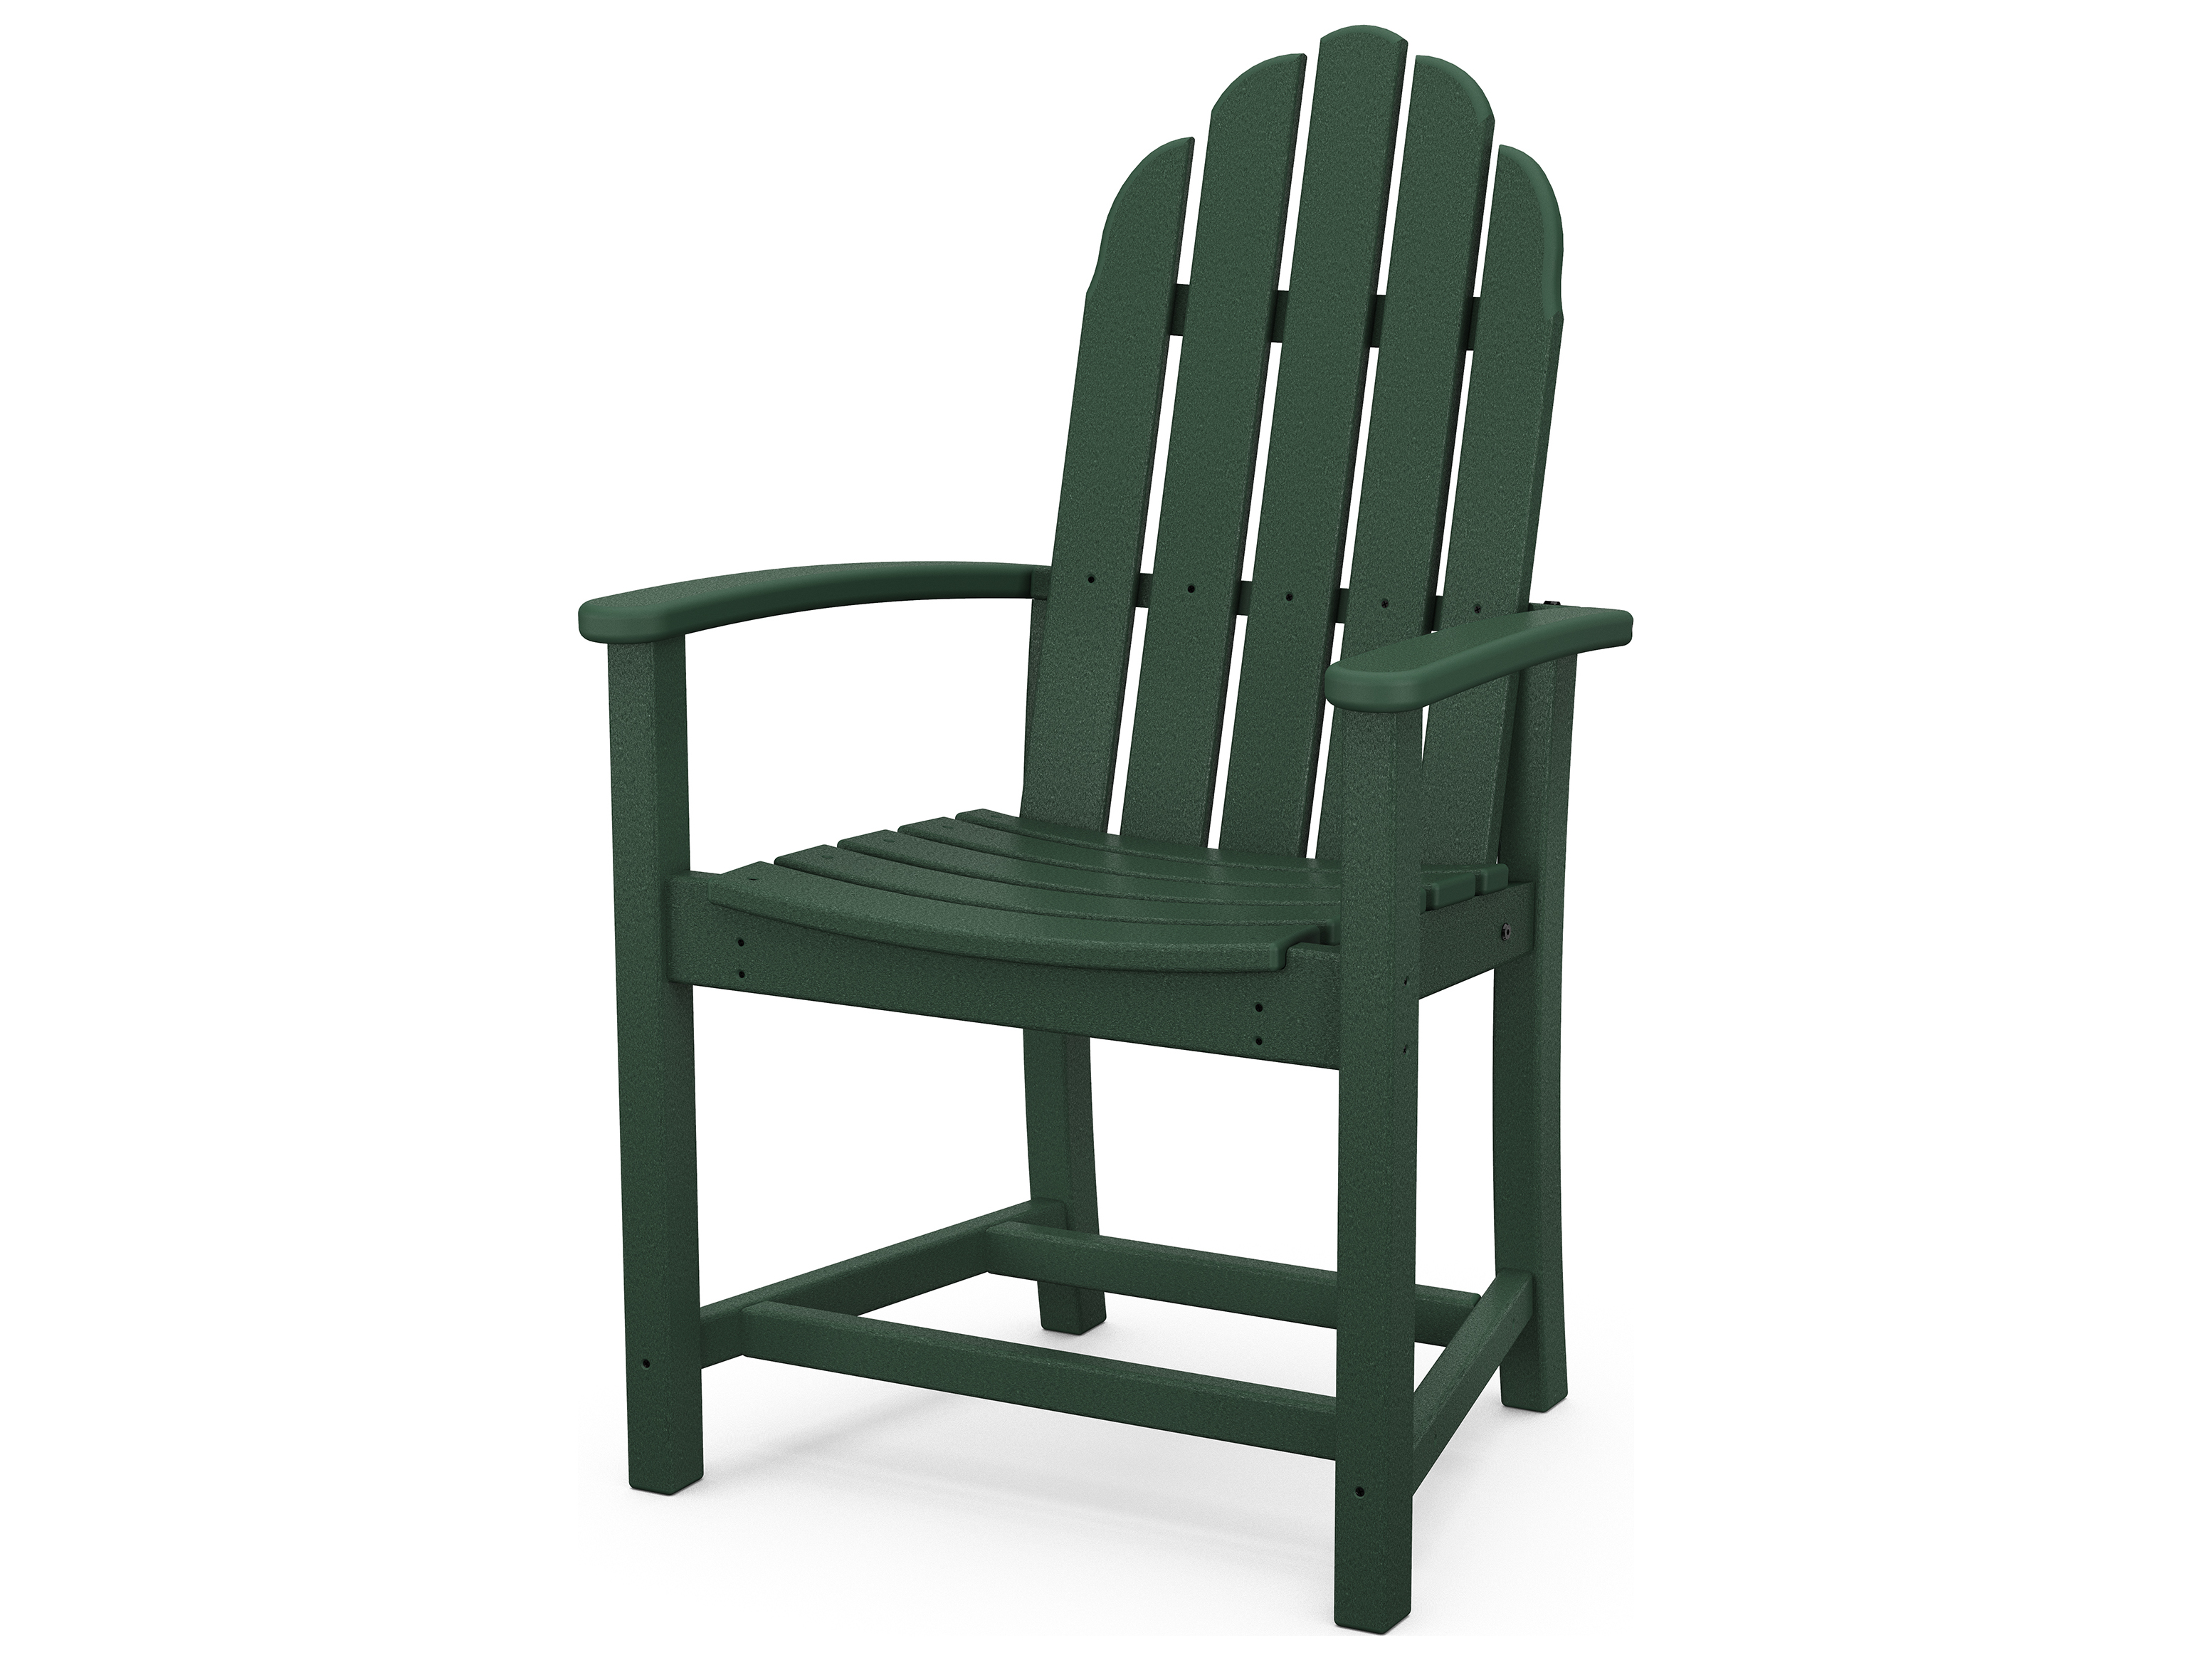 adirondack chairs recycled materials folding barber chair polywood classic plastic dining